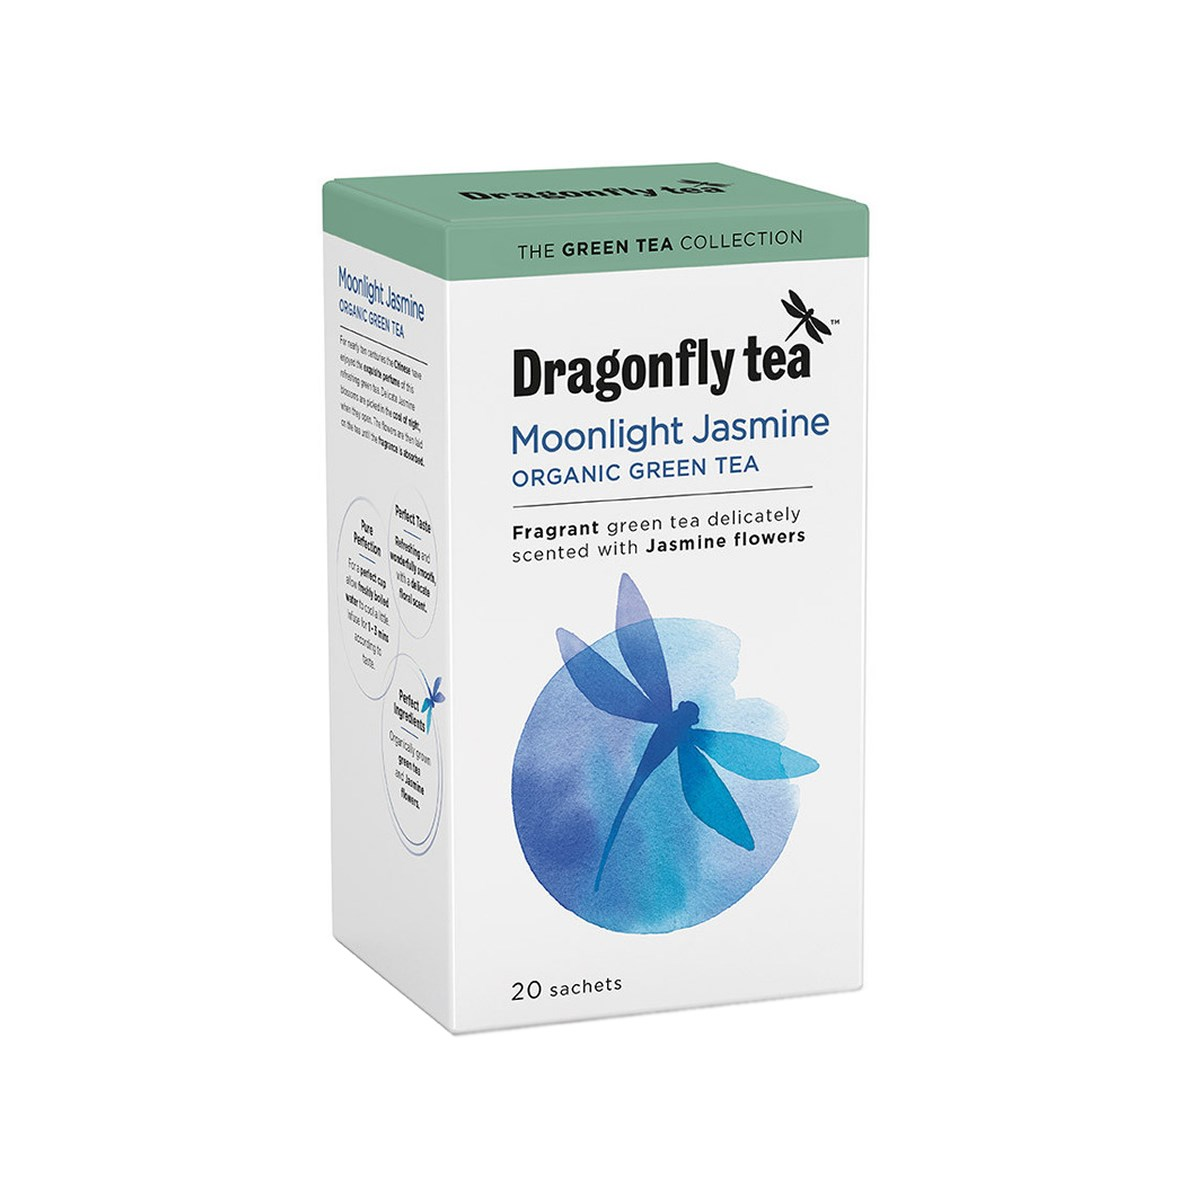 Dragonfly Organic Moonlight Jasmine Tea